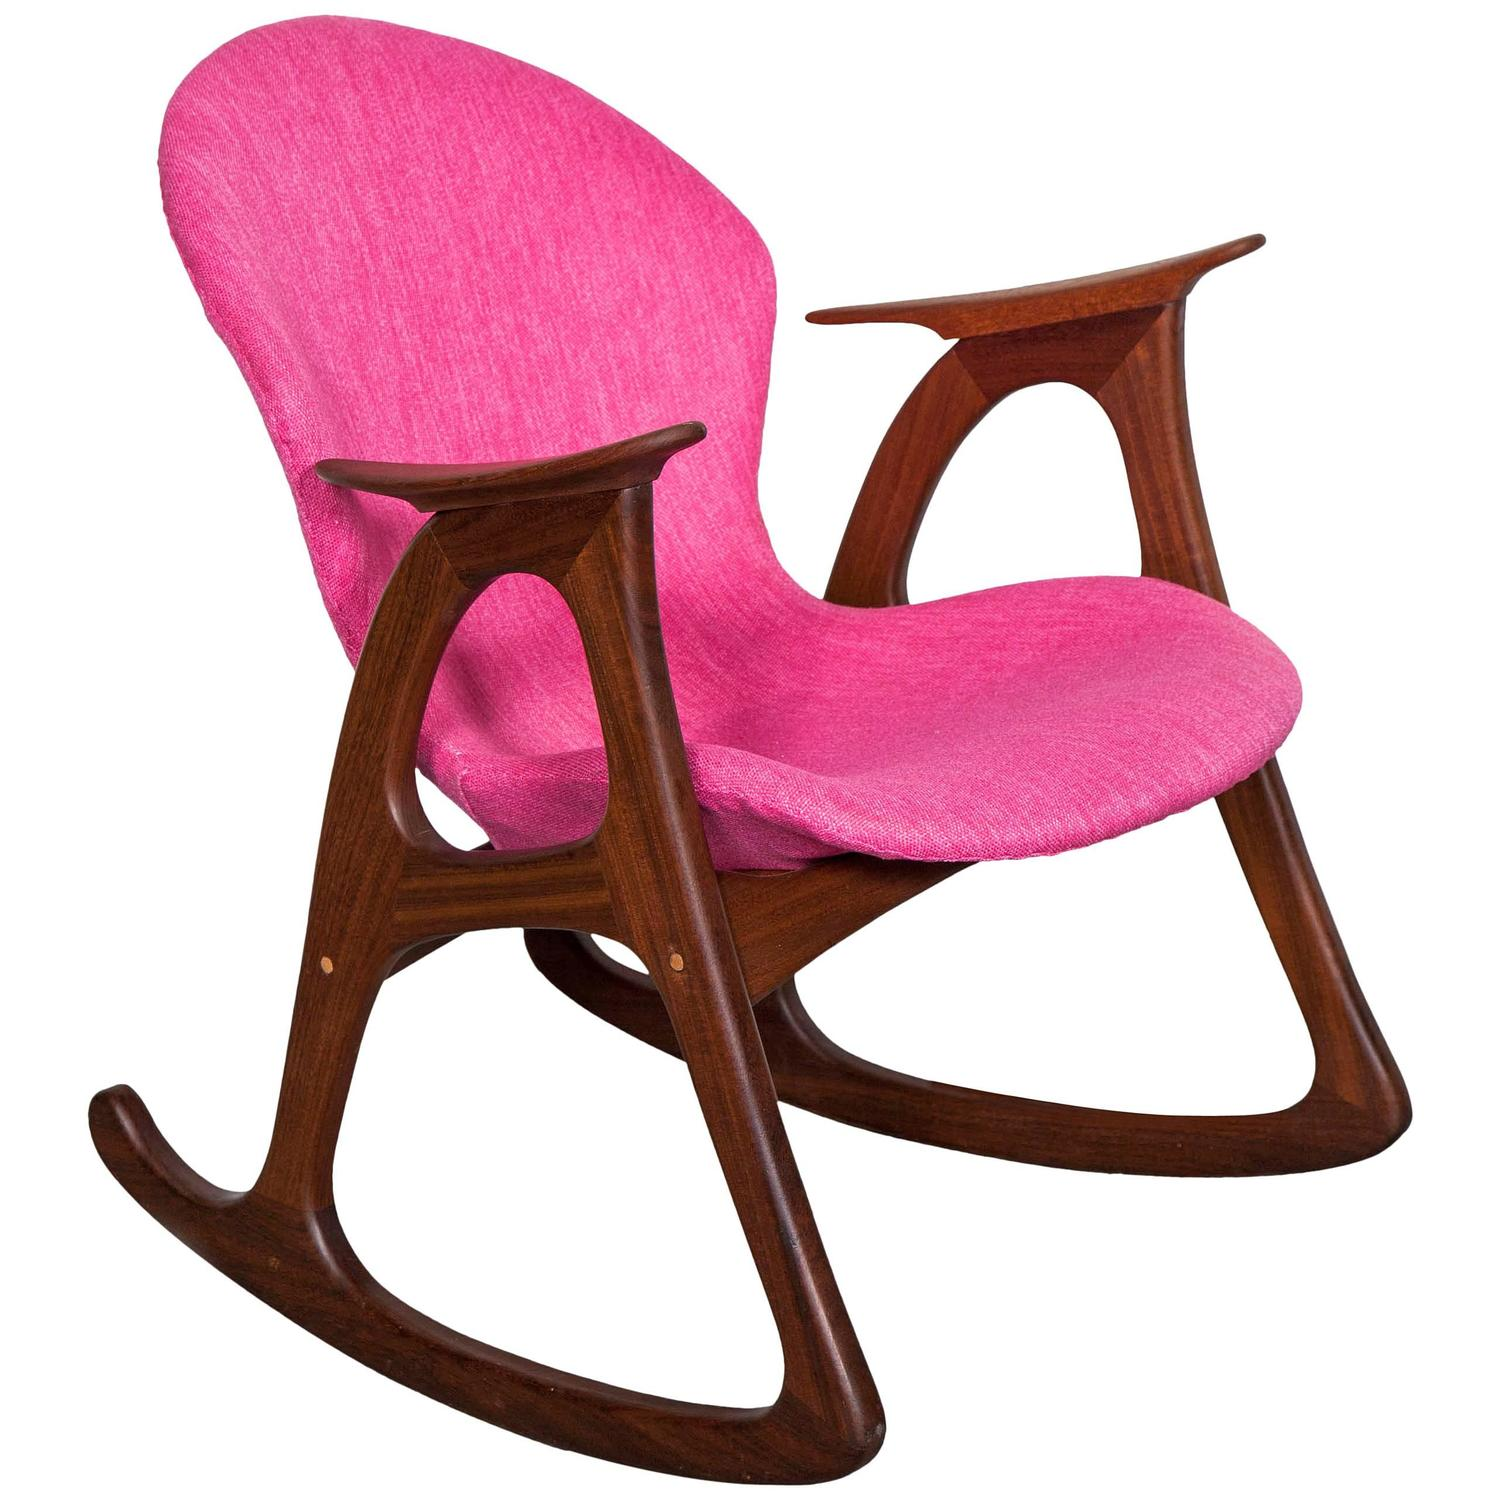 Teak Rocking Chair by Aage Christiansen Pink at 1stdibs